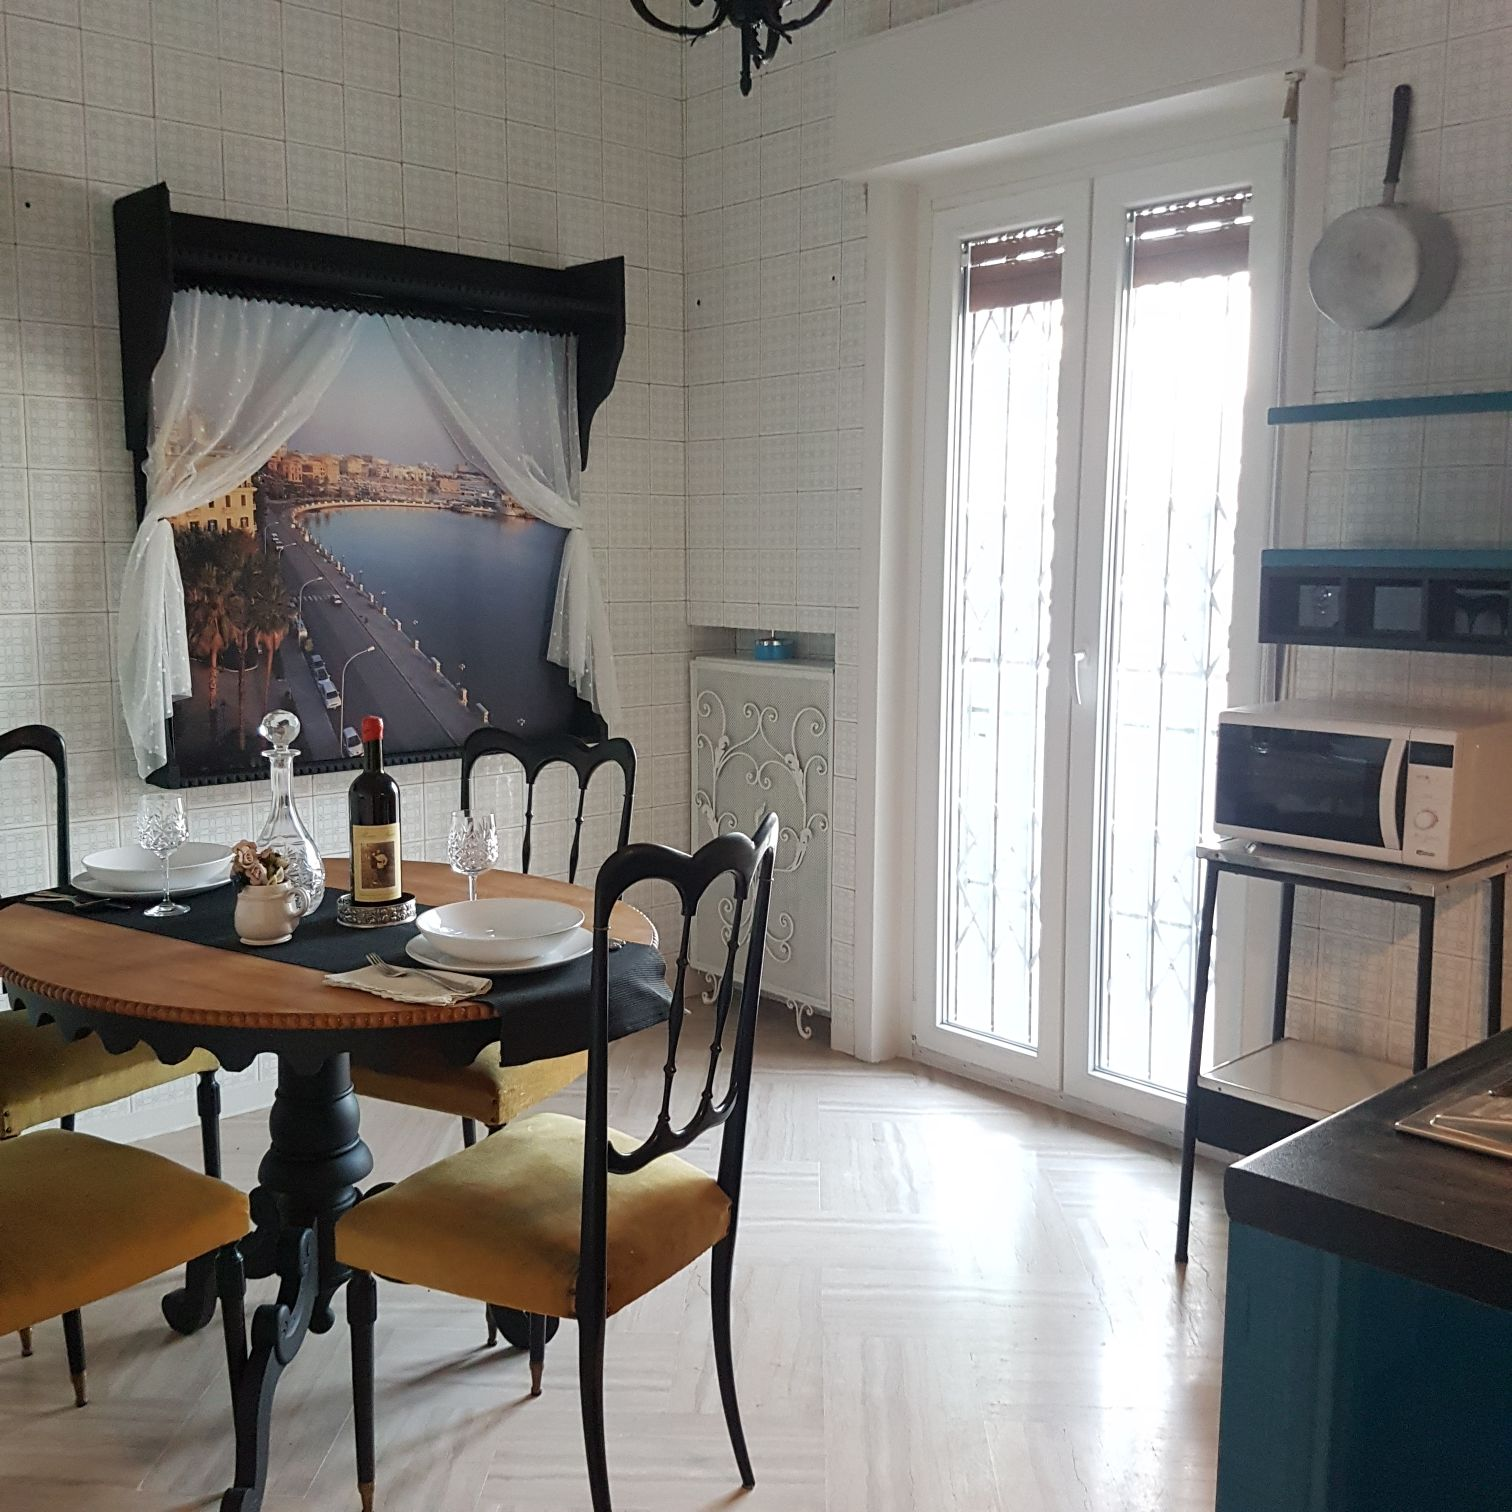 Finestra Su Bari Apartments For Rent In Bari Puglia Italy